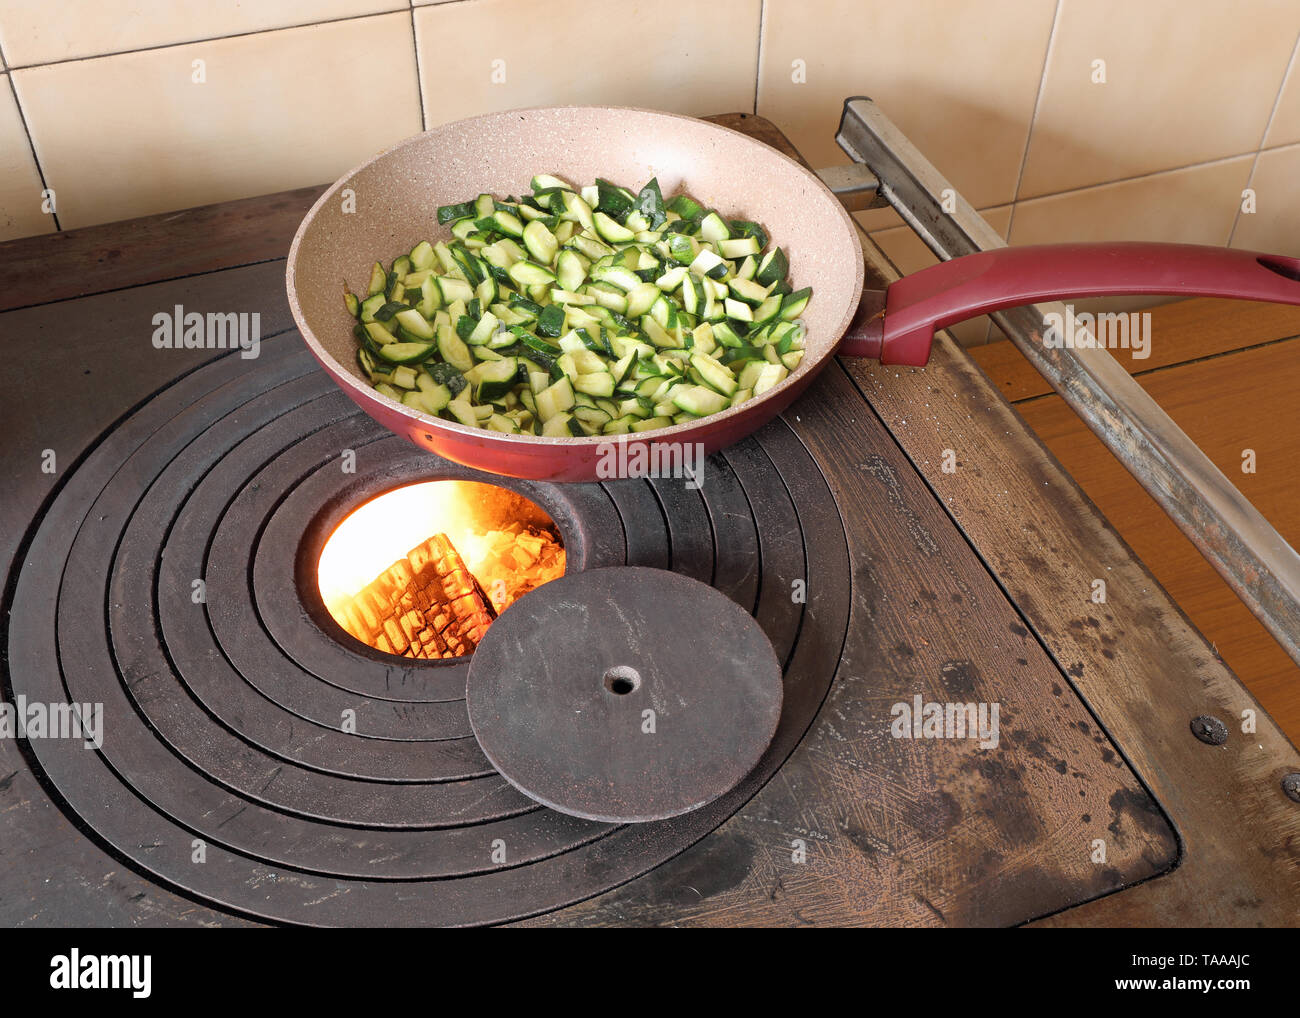 zucchini in a pan are cooked over a wood-burning stove in a mountain hut - Stock Image